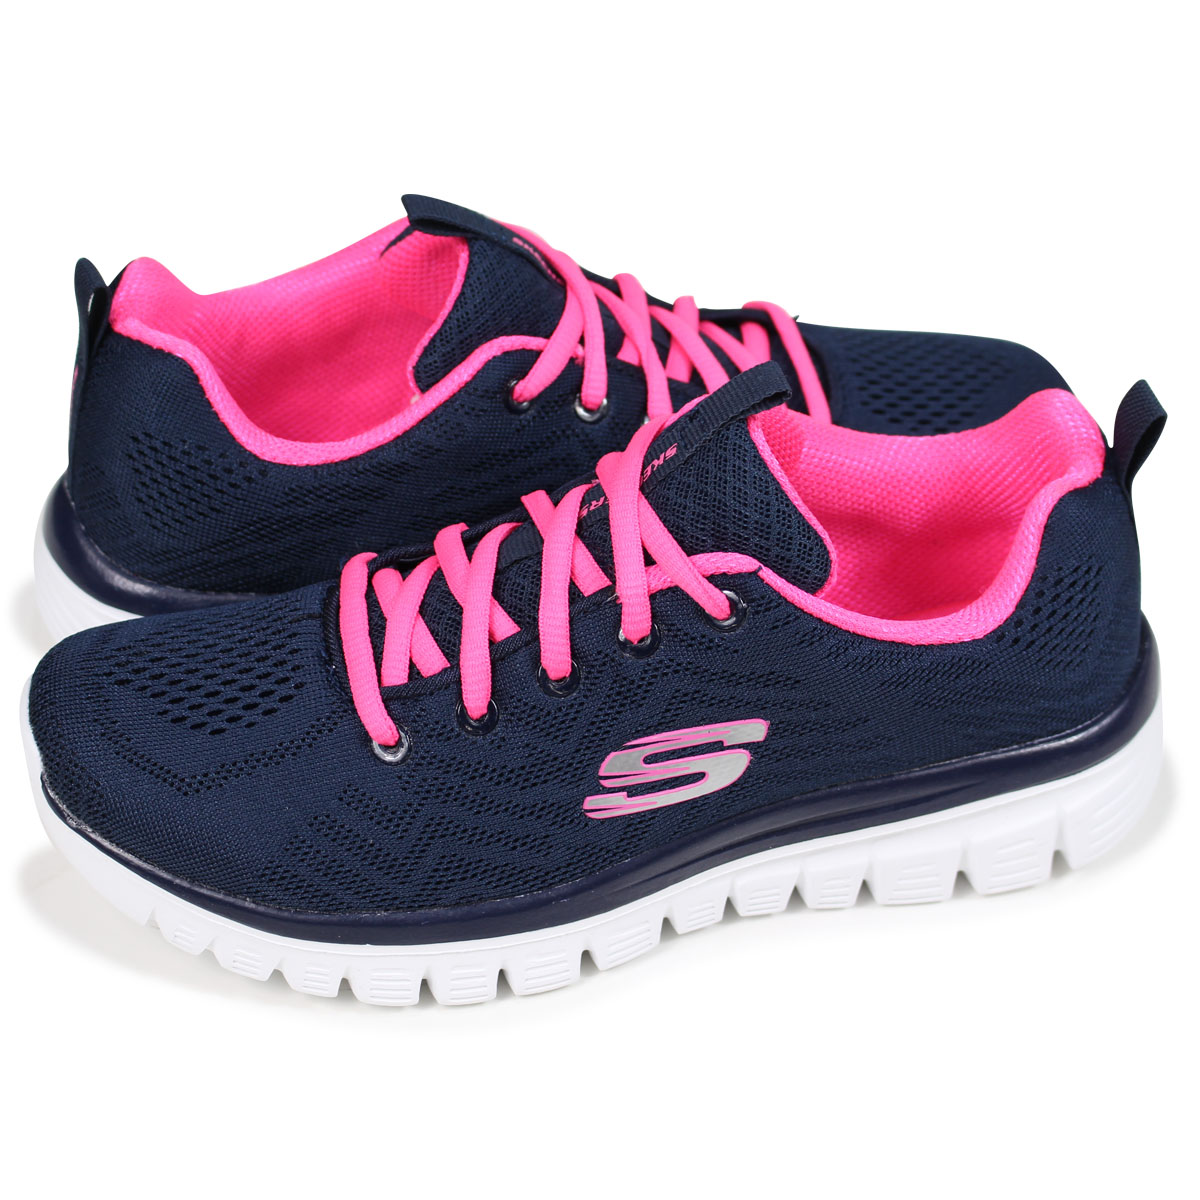 41a2687005d0 SKECHERS GRACEFUL GET CONNECTED スケッチャーズグレースフルレディーススニーカー 12615 navy  load  planned Shinnyu load in reservation product 5 11 containing